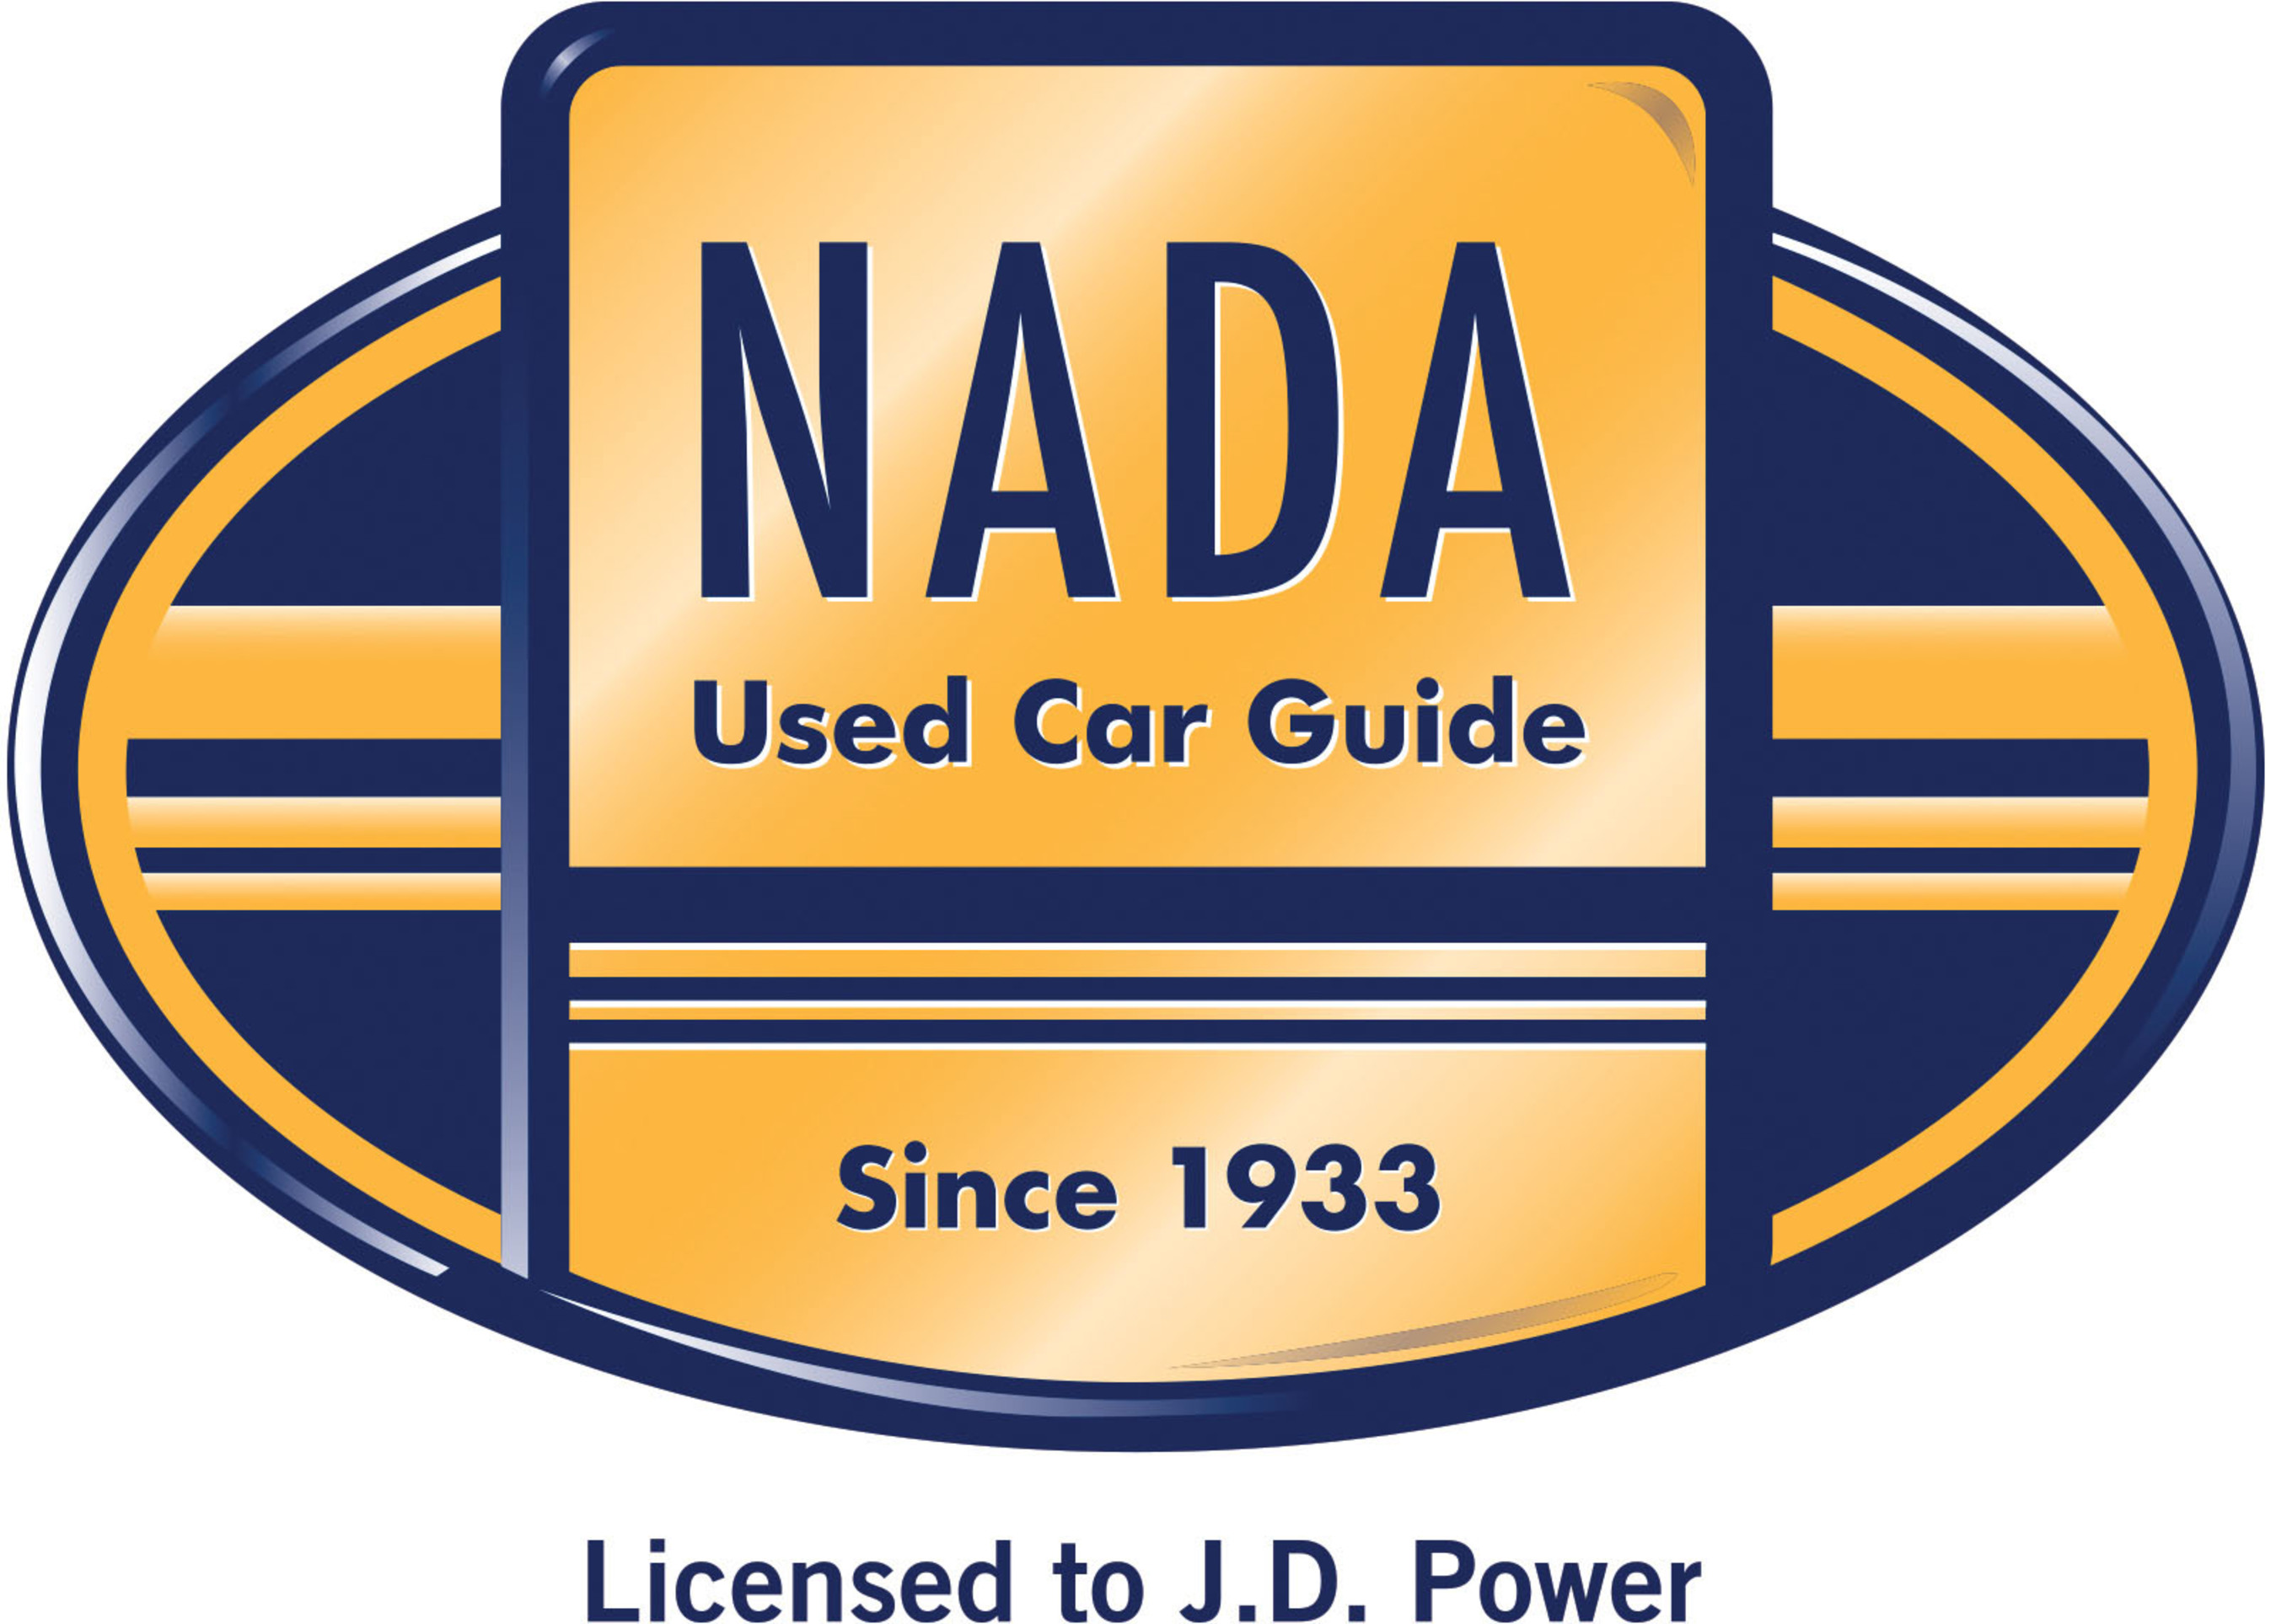 Since 1933, NADA Used Car Guide has earned its reputation as the leading provider of vehicle valuation products, services and information to businesses throughout the United States and worldwide. NADA's editorial team collects and analyzes over 1 million combined automotive and truck wholesale and retail transactions per month. Its guidebooks, auction data, analysis and data solutions offer automotive/truck, finance, insurance and government professionals the timely information and reliable solutions they need to make better business decisions.